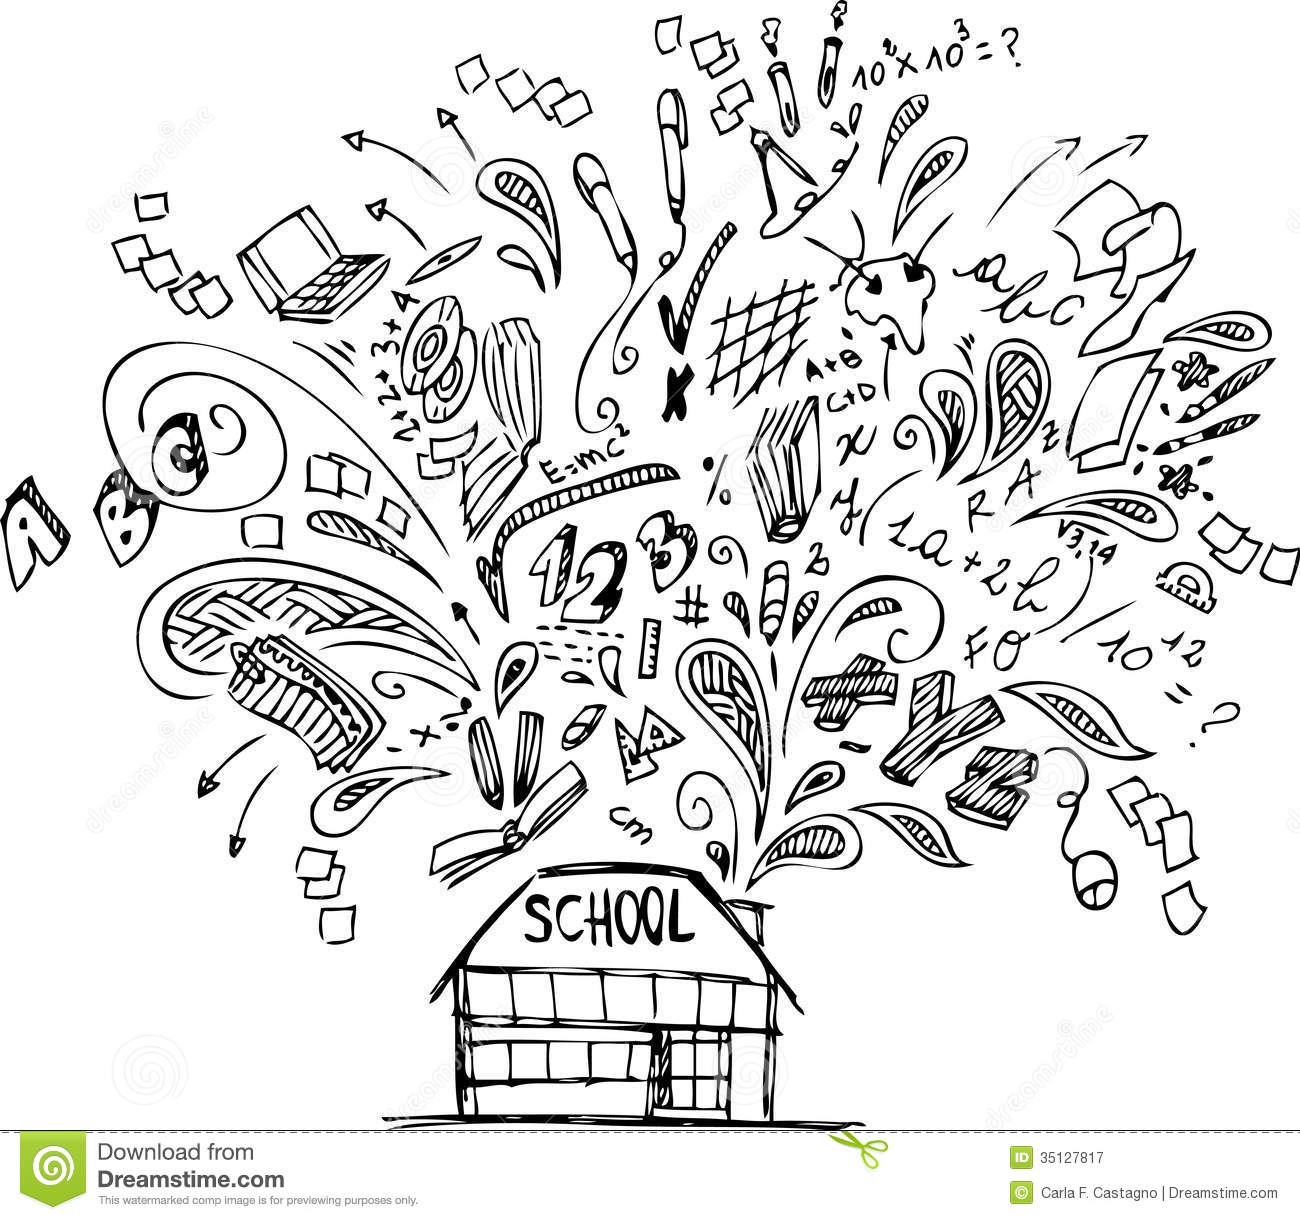 School Building With Doodles Royalty Free Stock